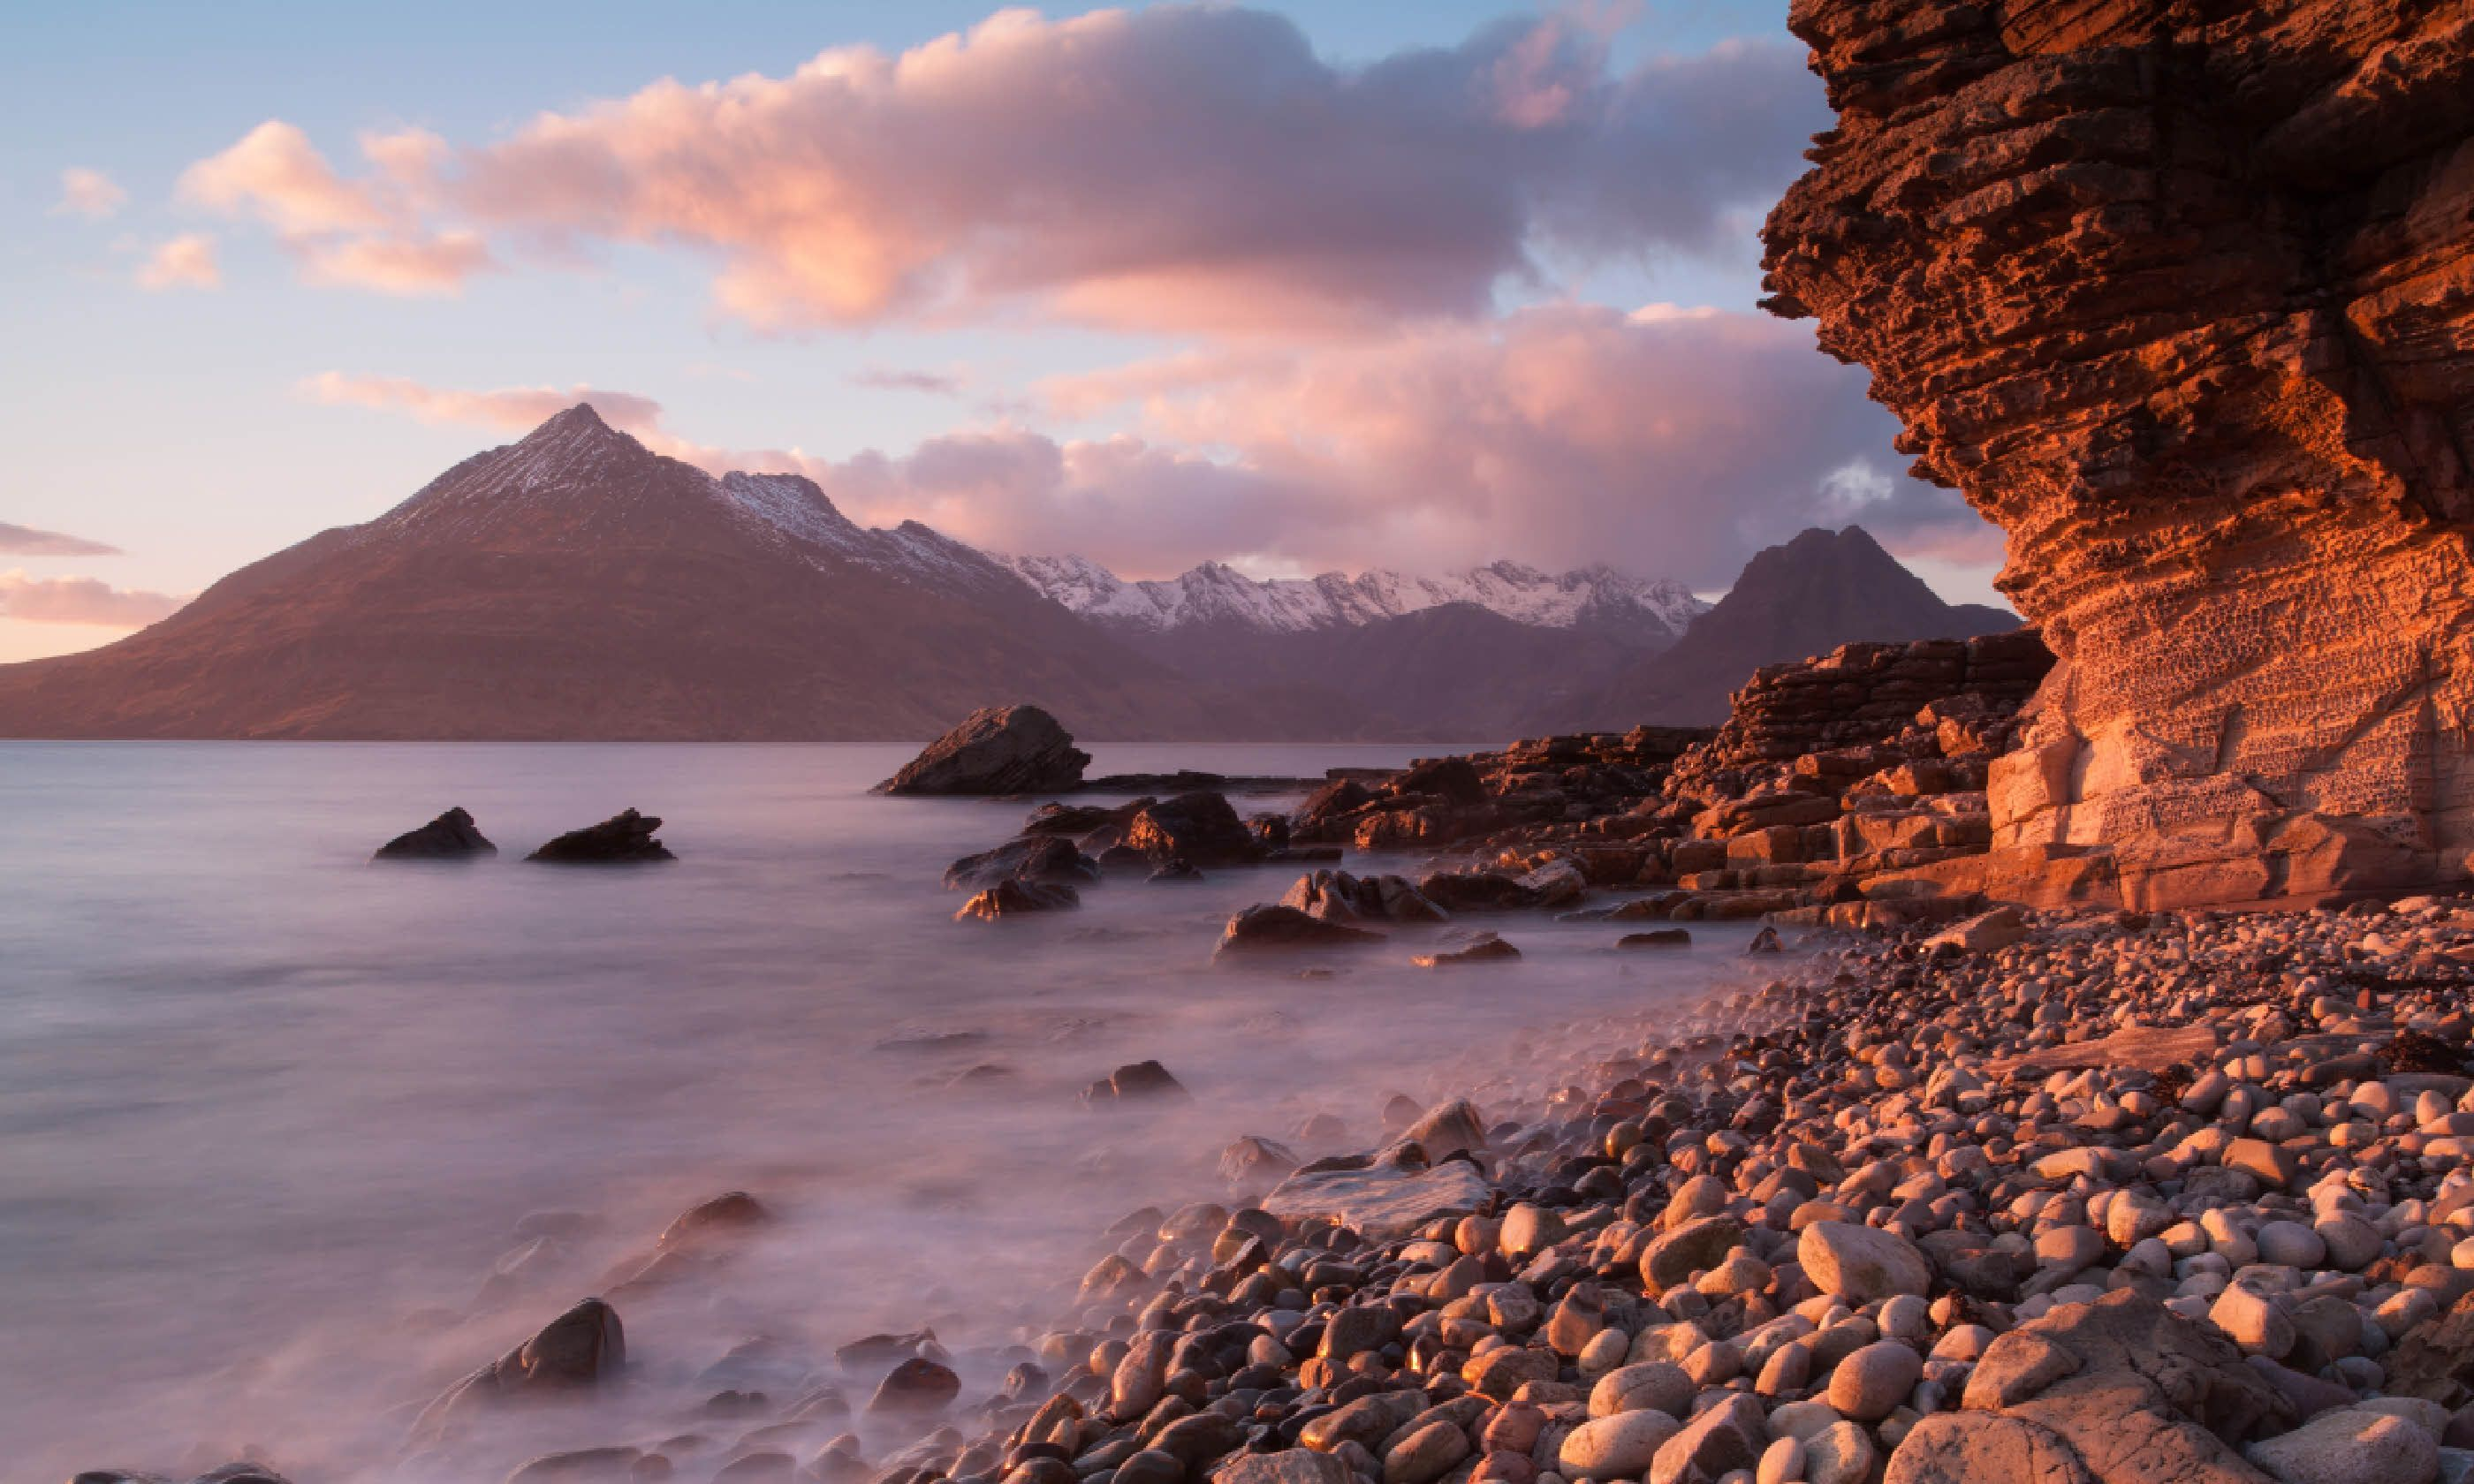 Elgol beach at sunset, looking towards the Cuillin mountains (Shutterstock)